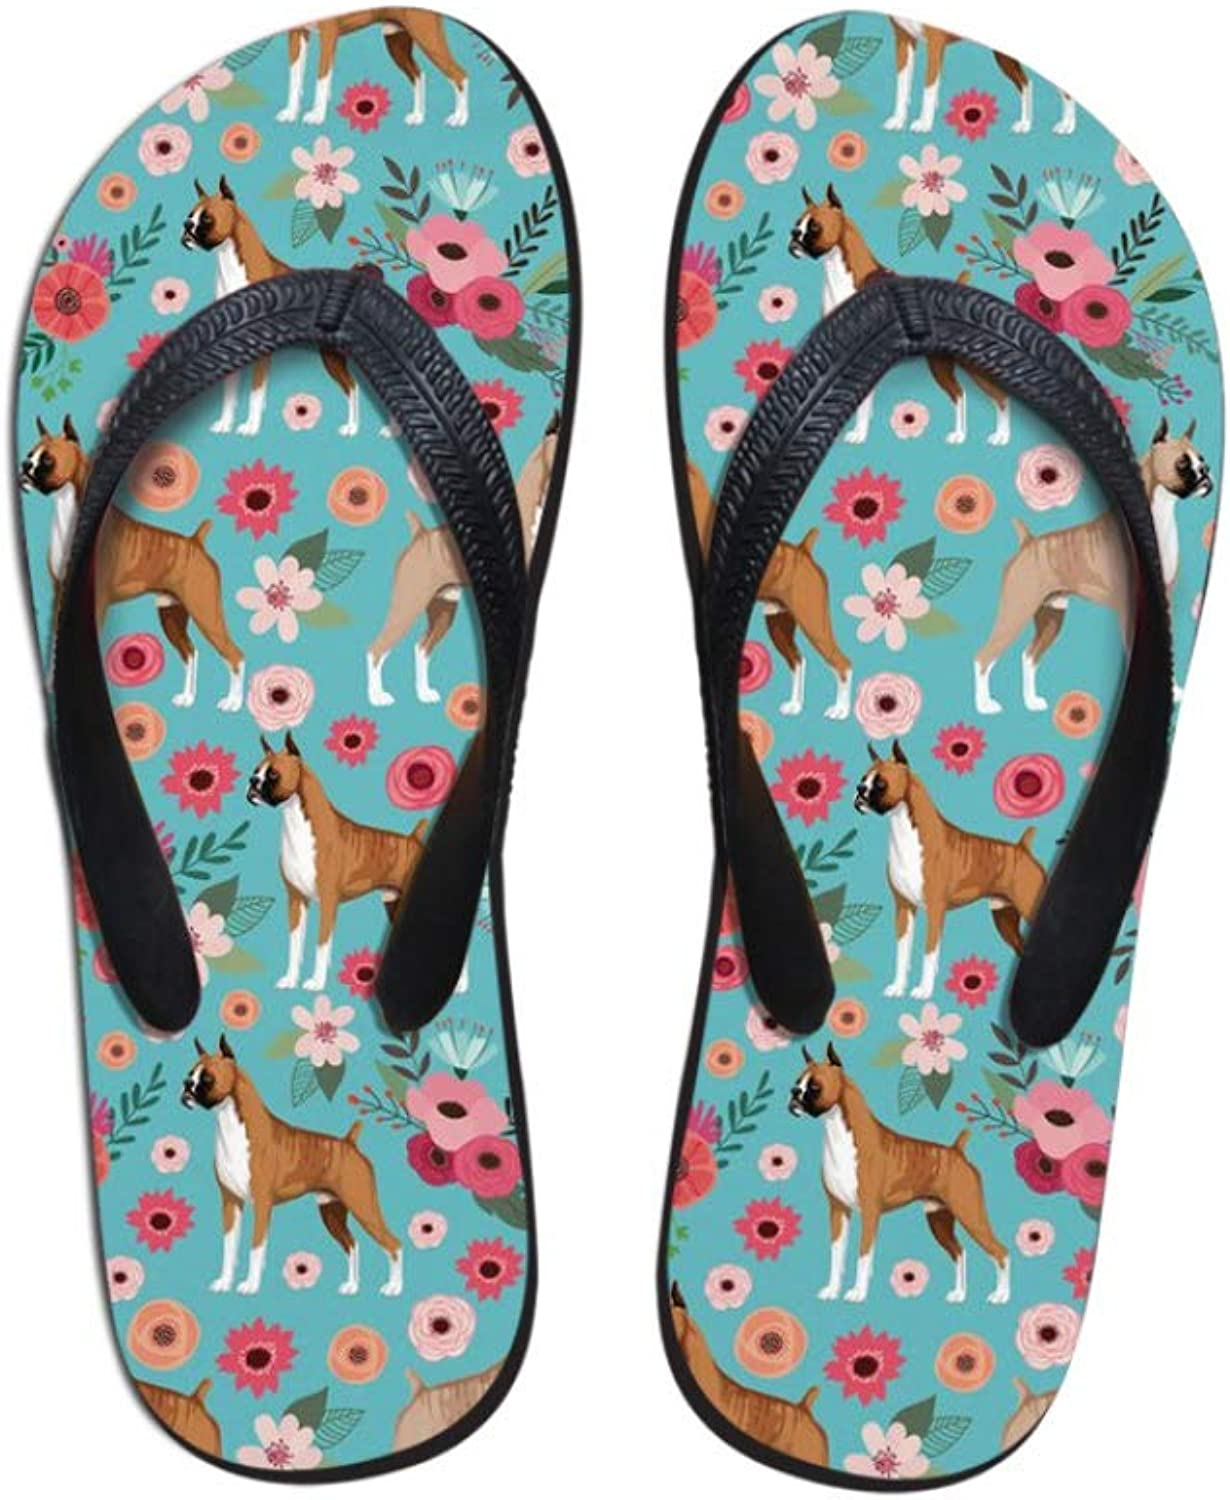 T-JULY Flip Flops for Woman Fashion Puppies Boxer Floral Print Women Flats Beach Slippers Summer Flip Flops for Lady Girls